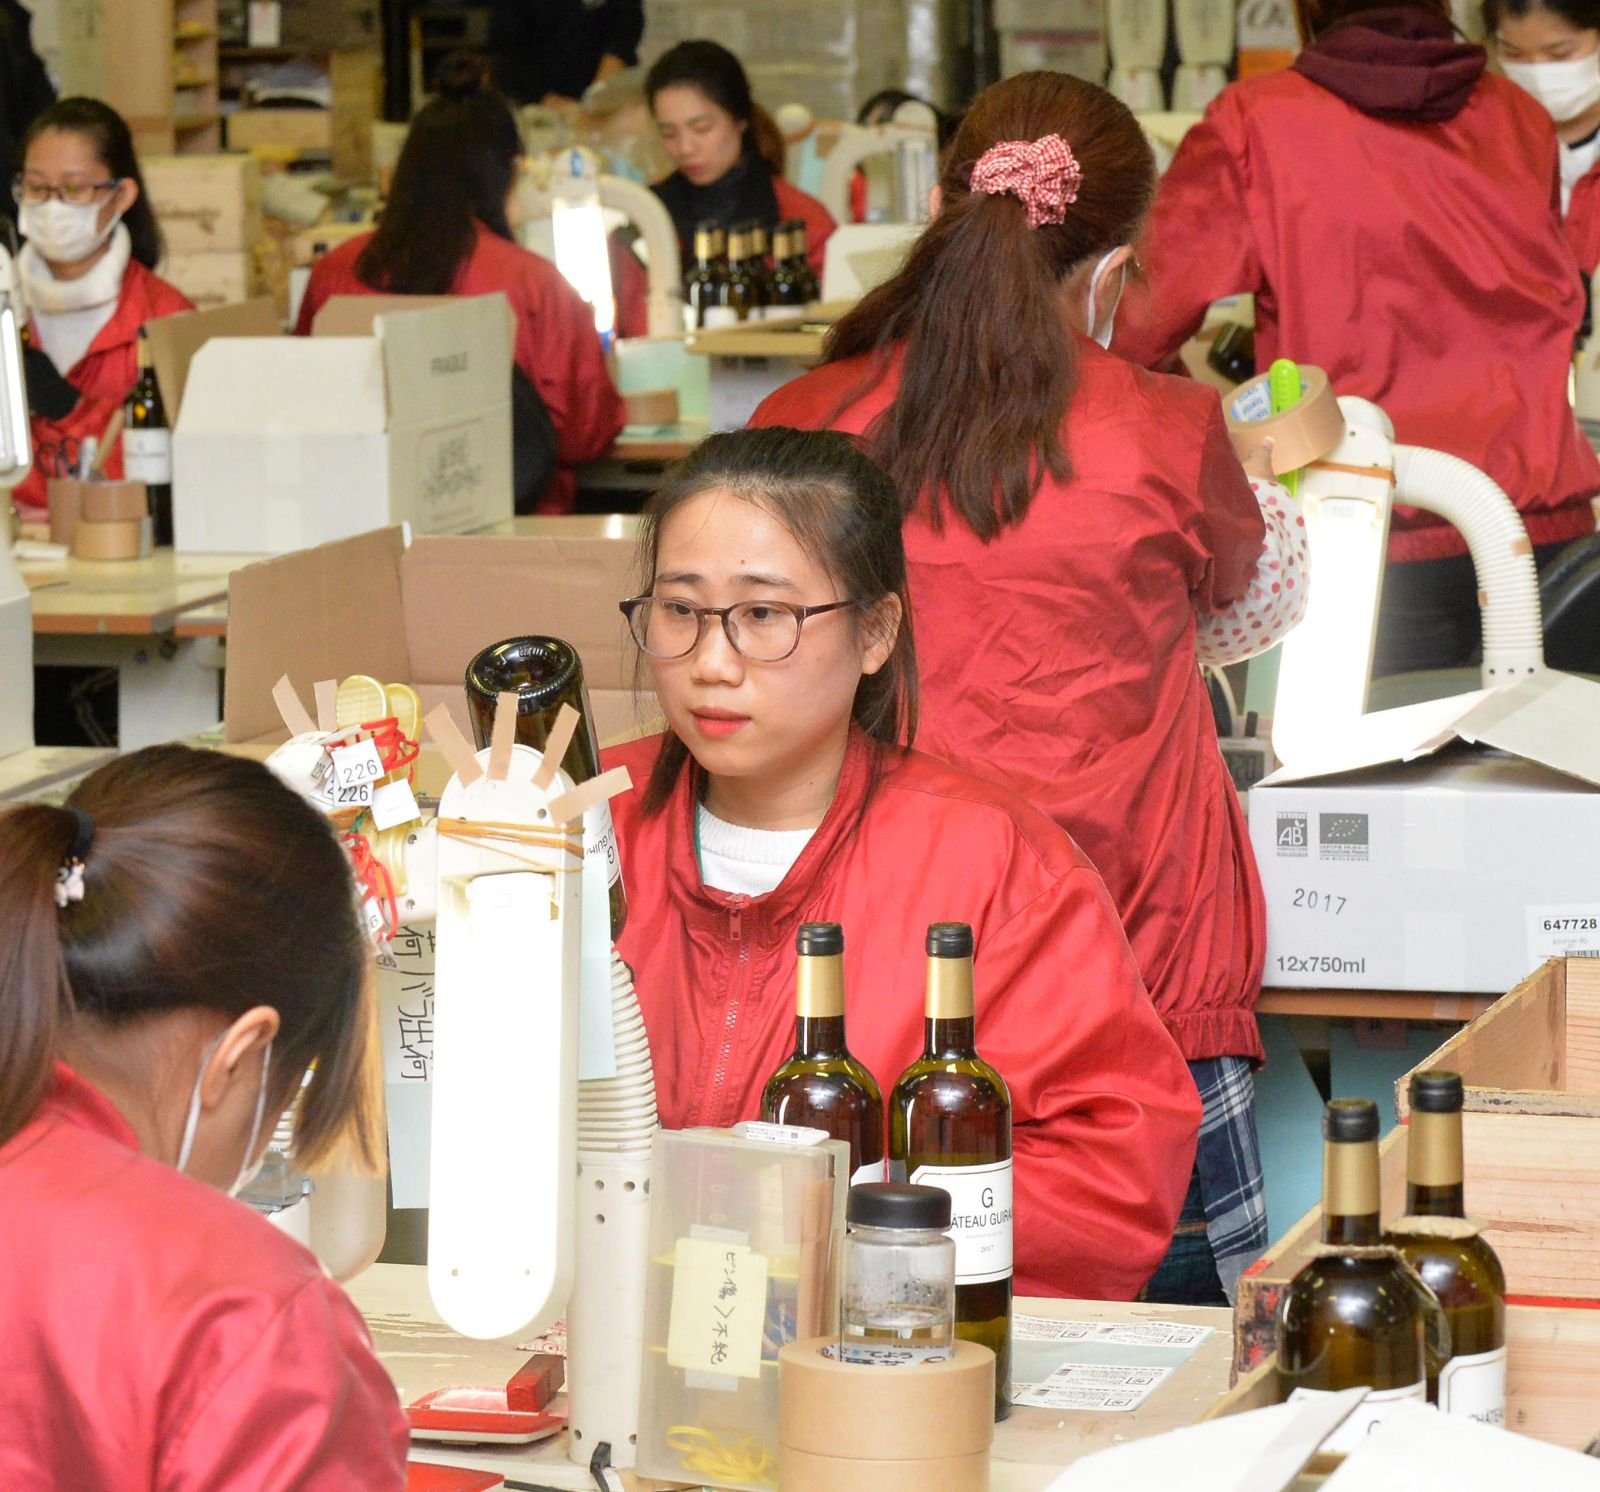 Is Admitting More Foreign Workers the Only Economic Lifeline for Japan?